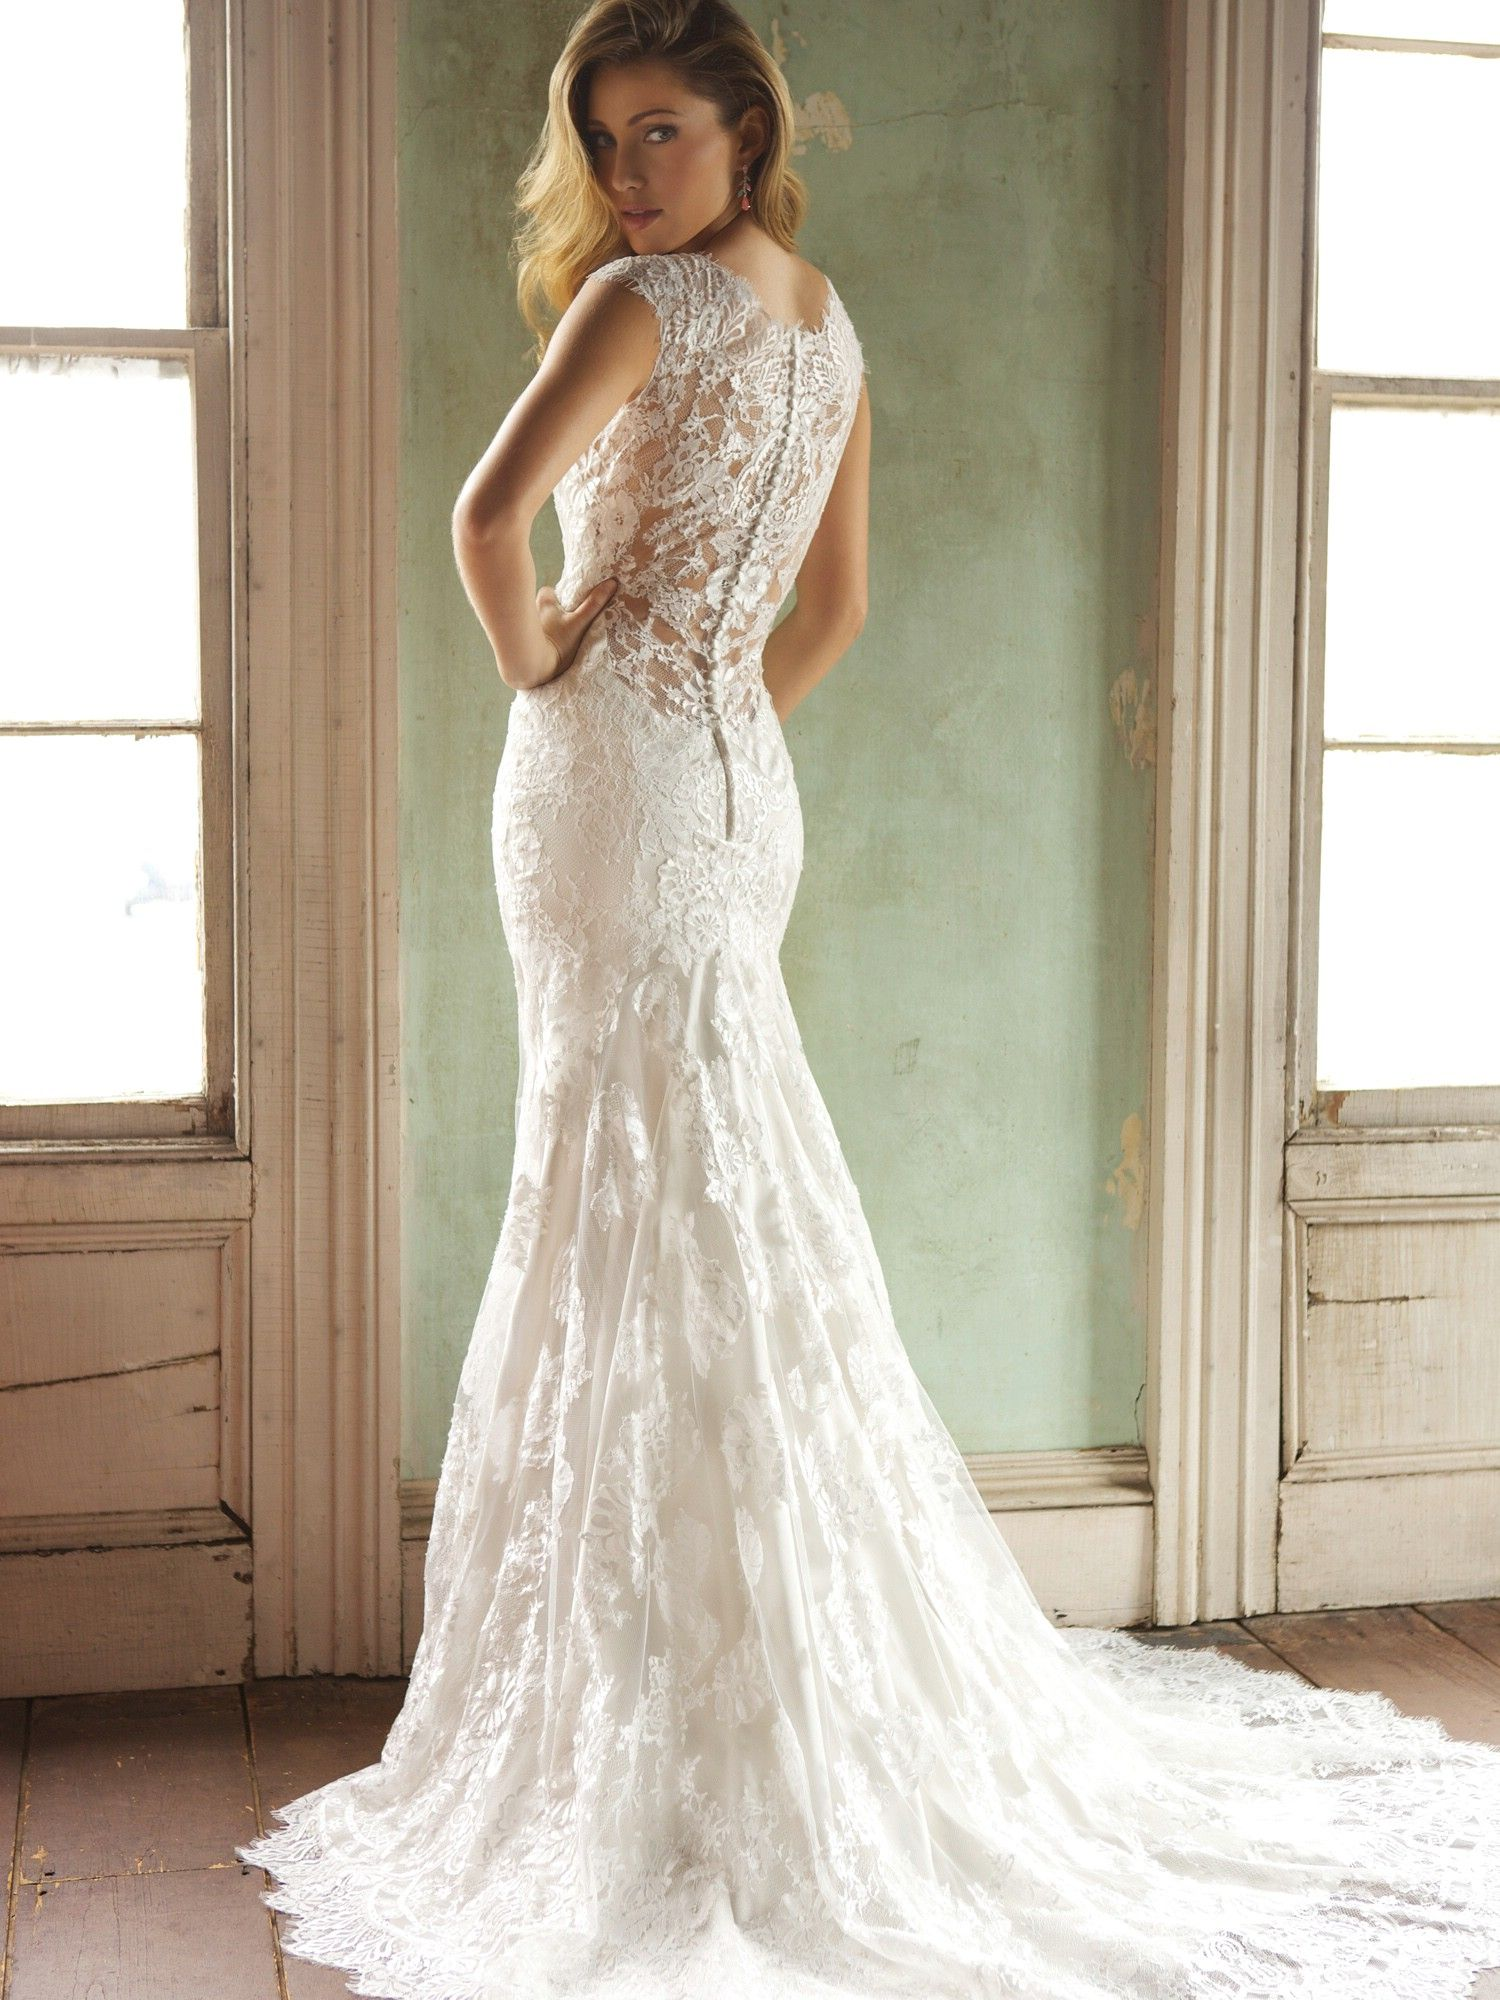 Allure wedding dresses style wedding dresses pinterest